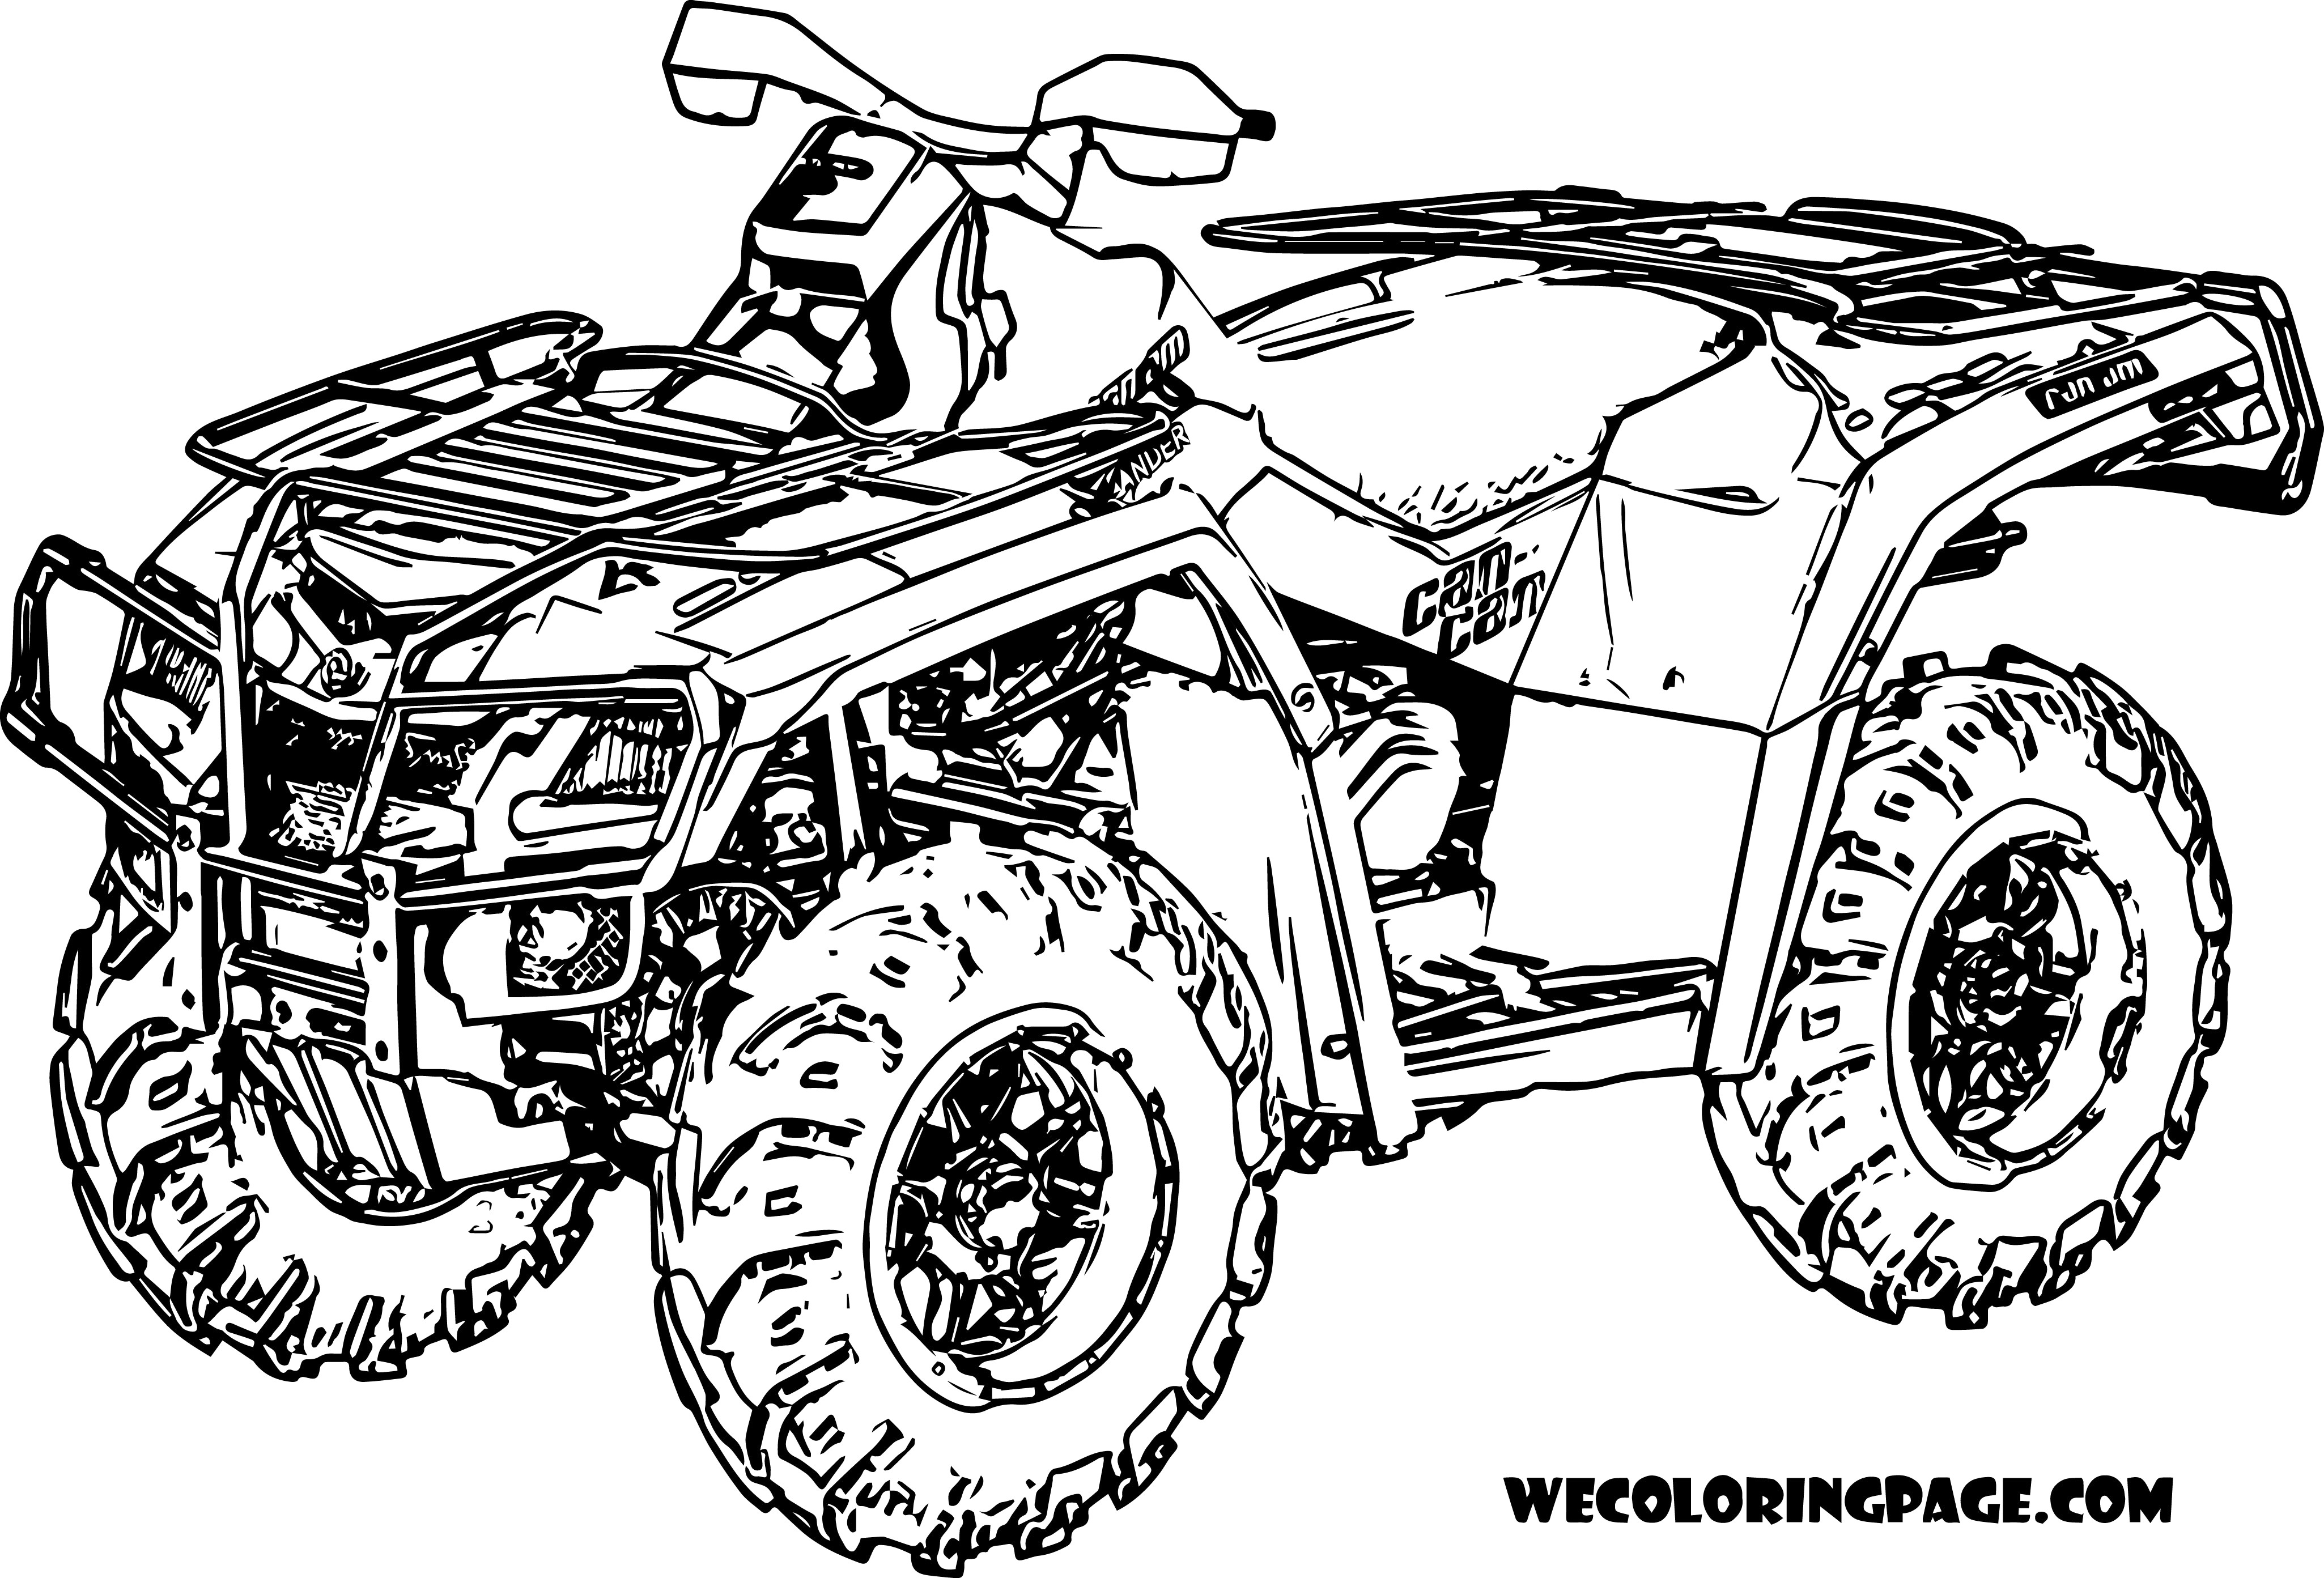 Atv clipart coloring page. Rescuedesk me four wheeler